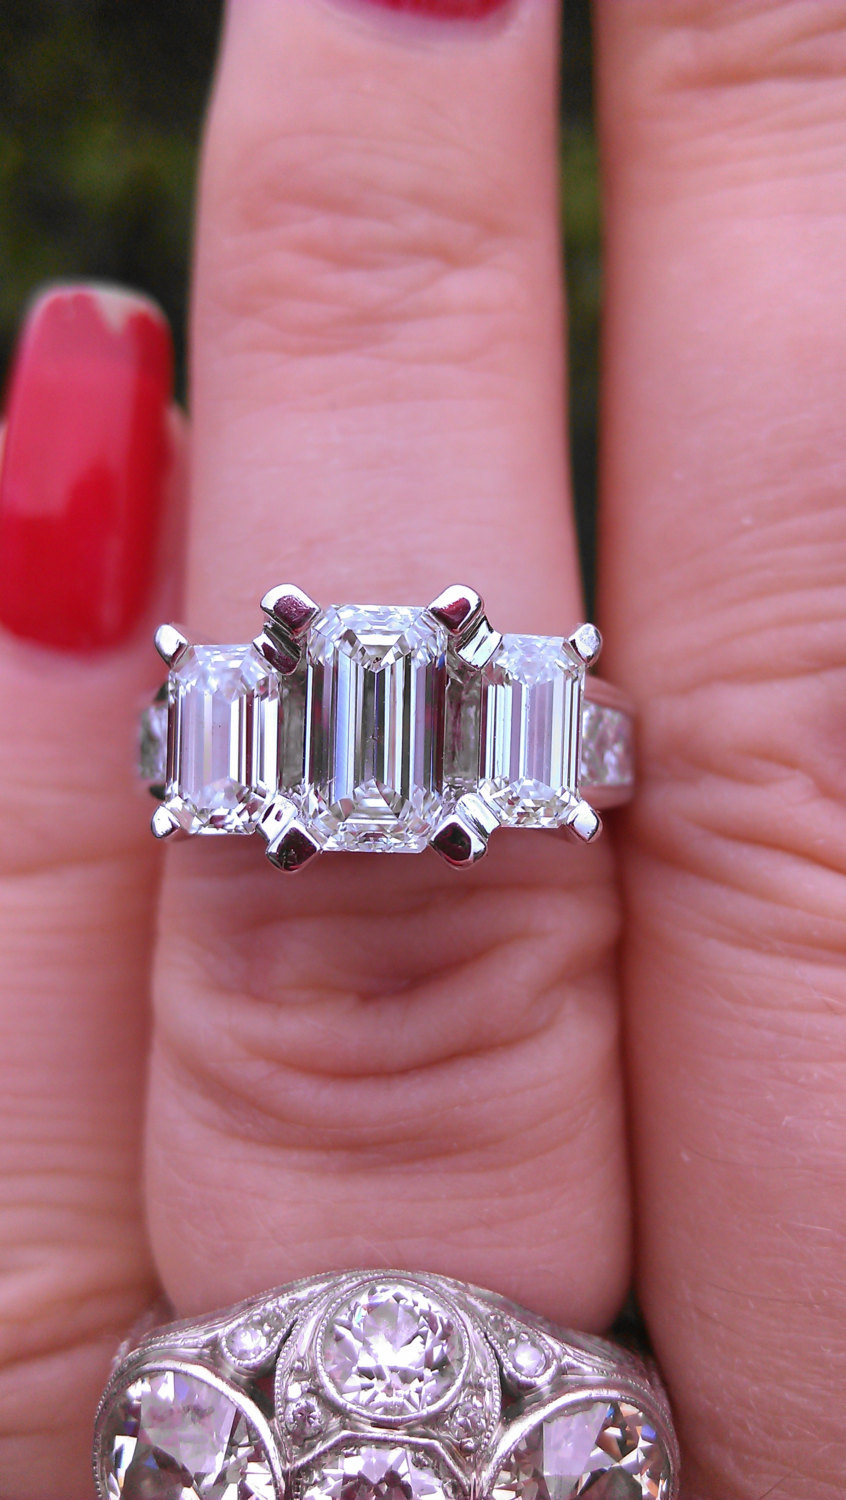 14k Gold 2.5ct Emerald Cut Diamond Wedding and 50 similar items